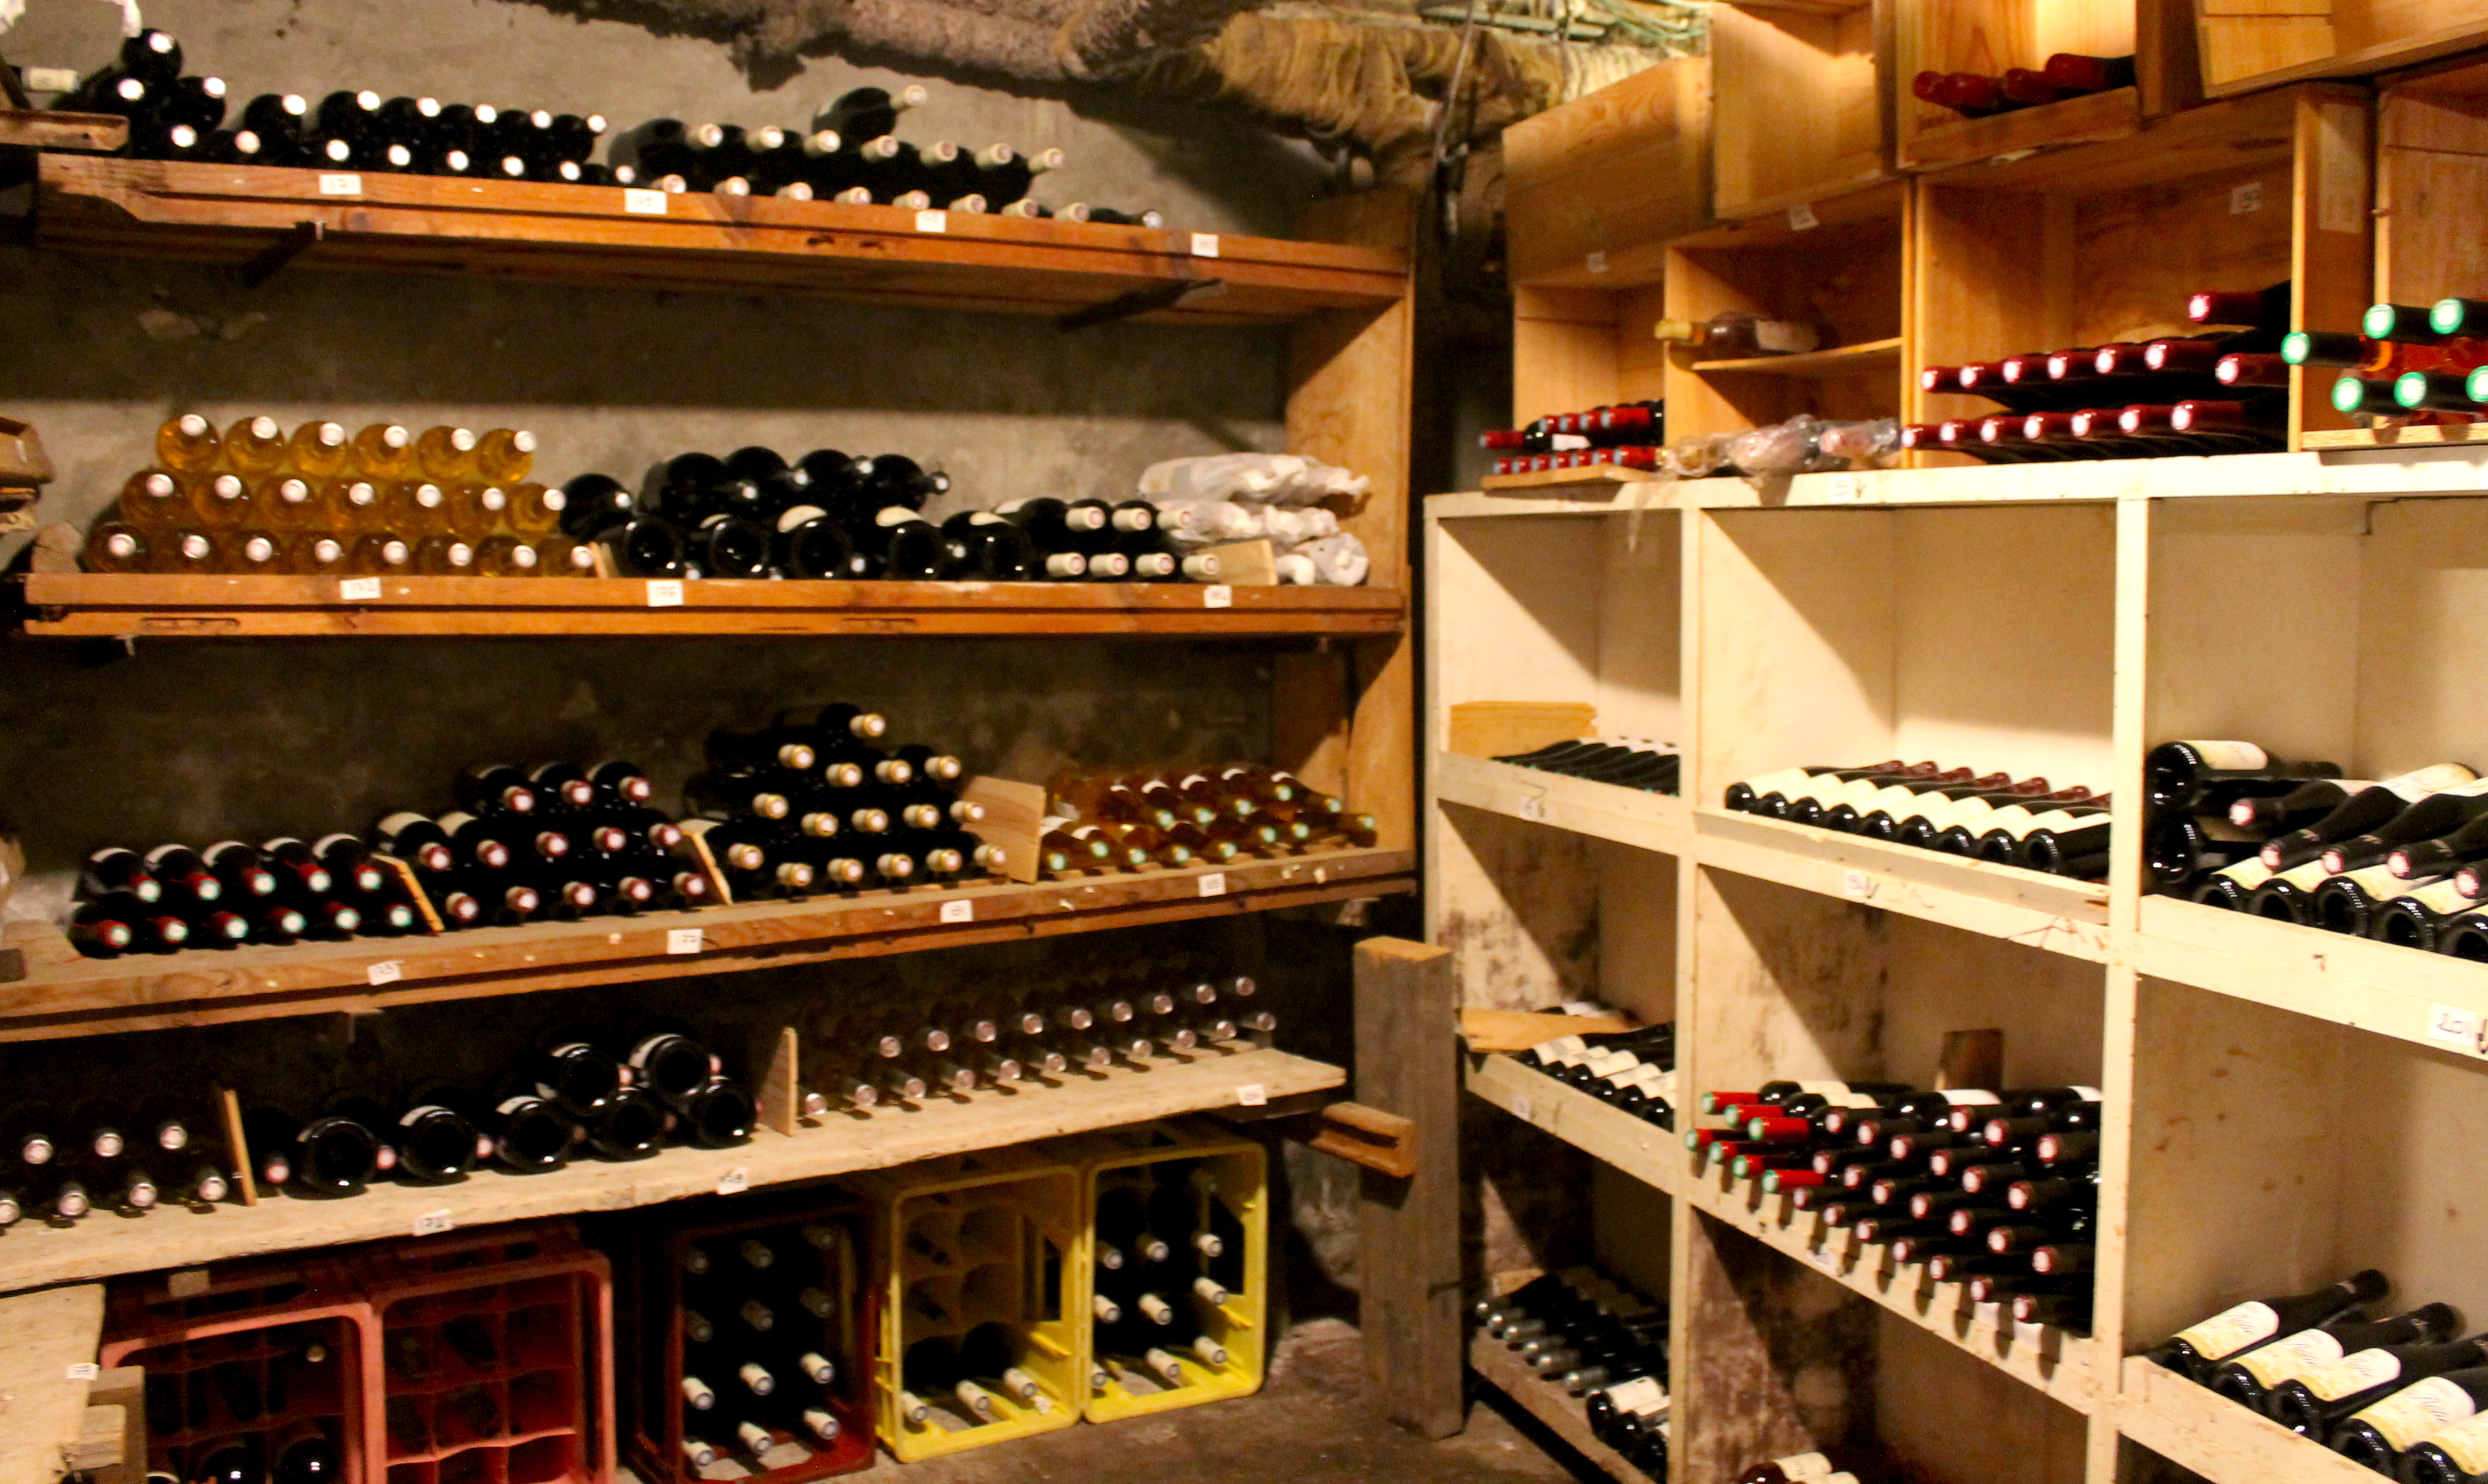 wine-cellar-bonne-etape-lustforthesublime